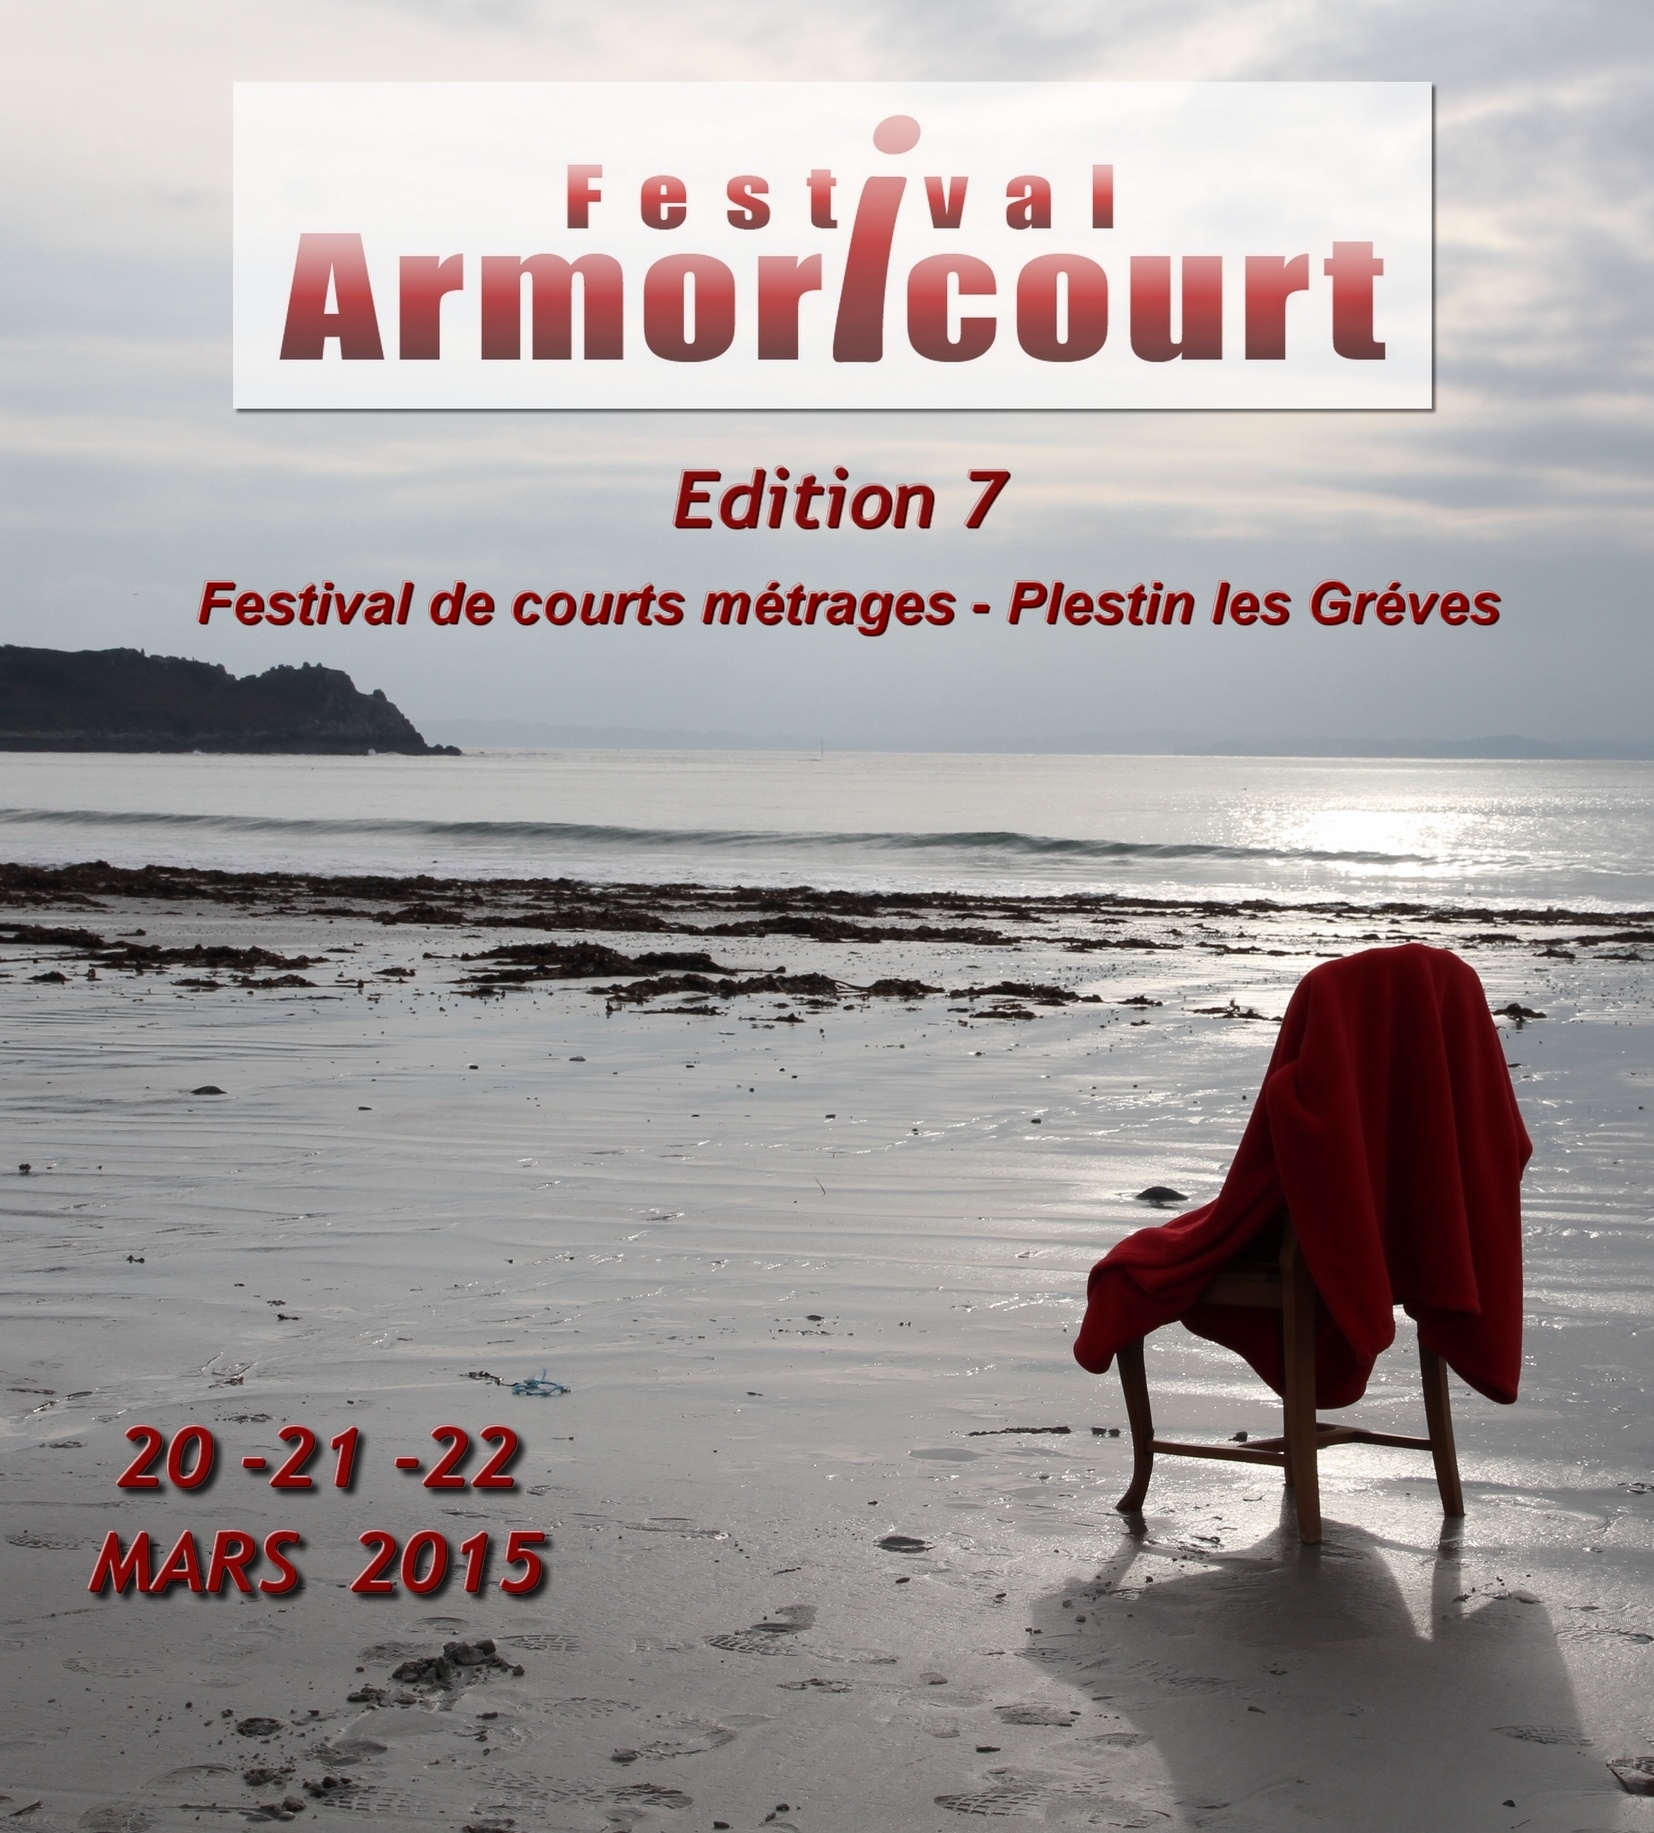 Festival de courts métrages ARMORICOURT – Appel à films